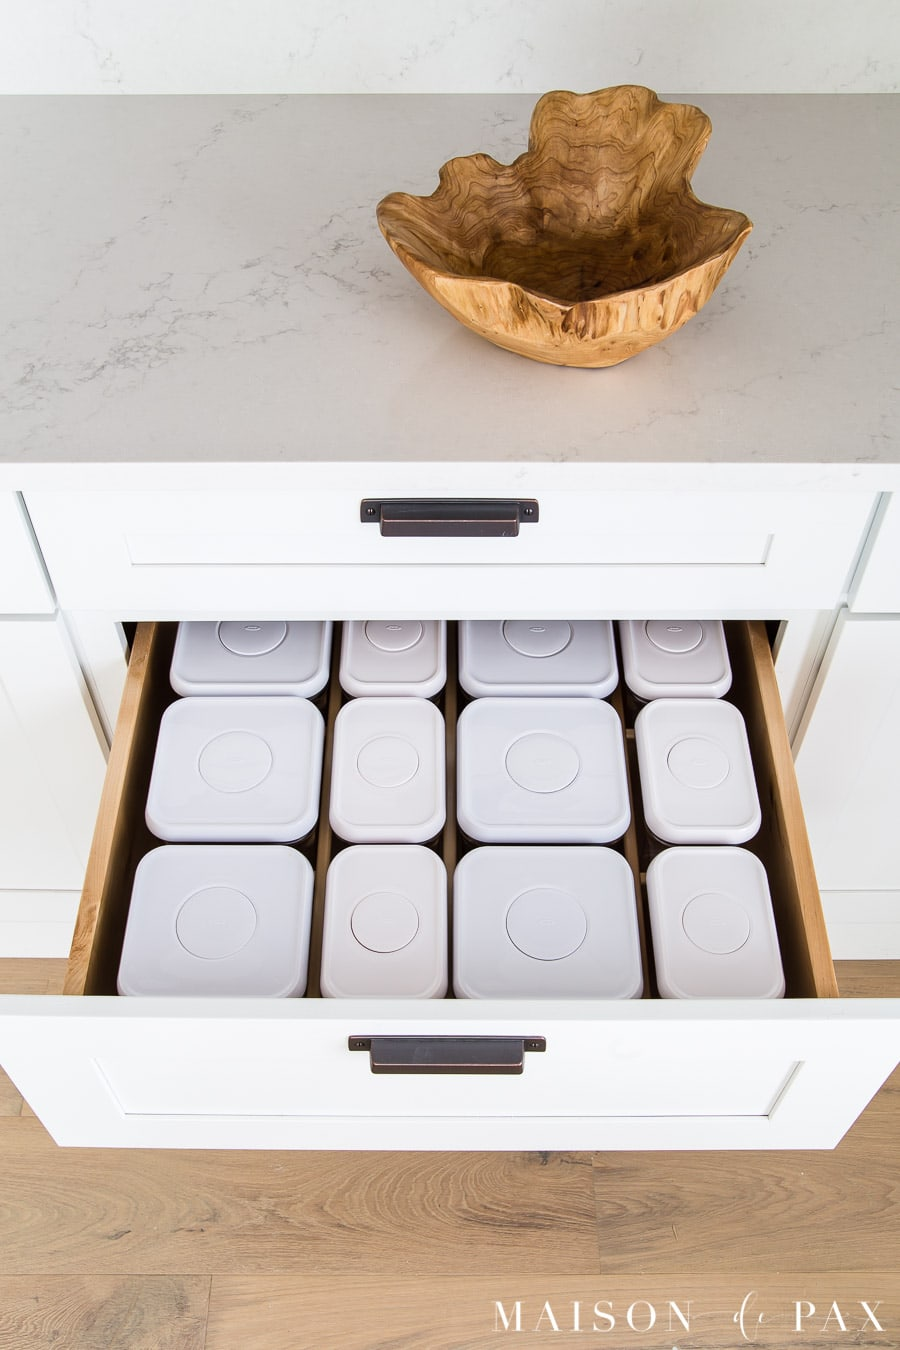 oxo canister organizer in kitchen drawer | Maison de Pax